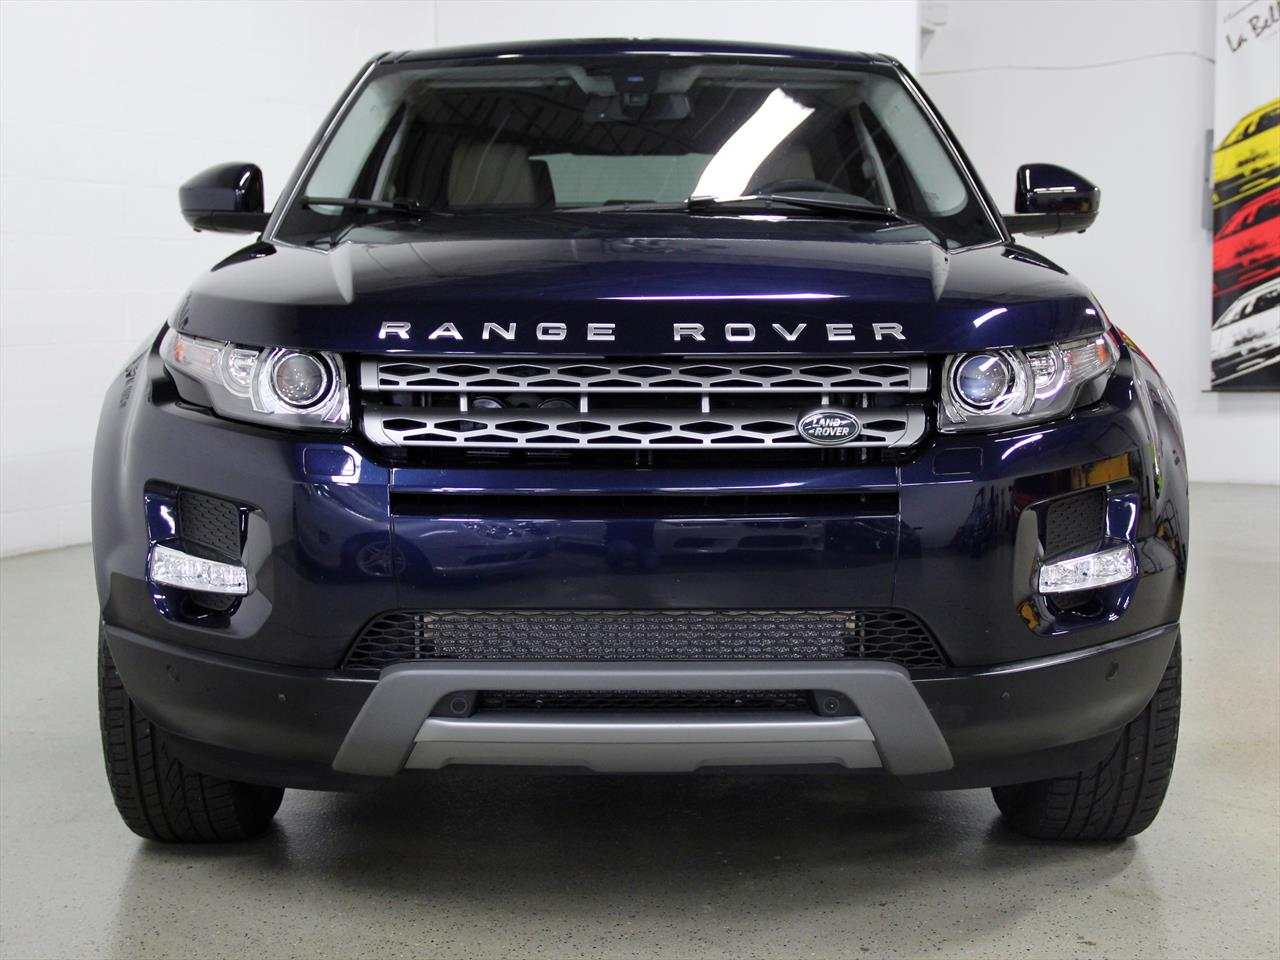 2014 land rover range rover evoque. Black Bedroom Furniture Sets. Home Design Ideas